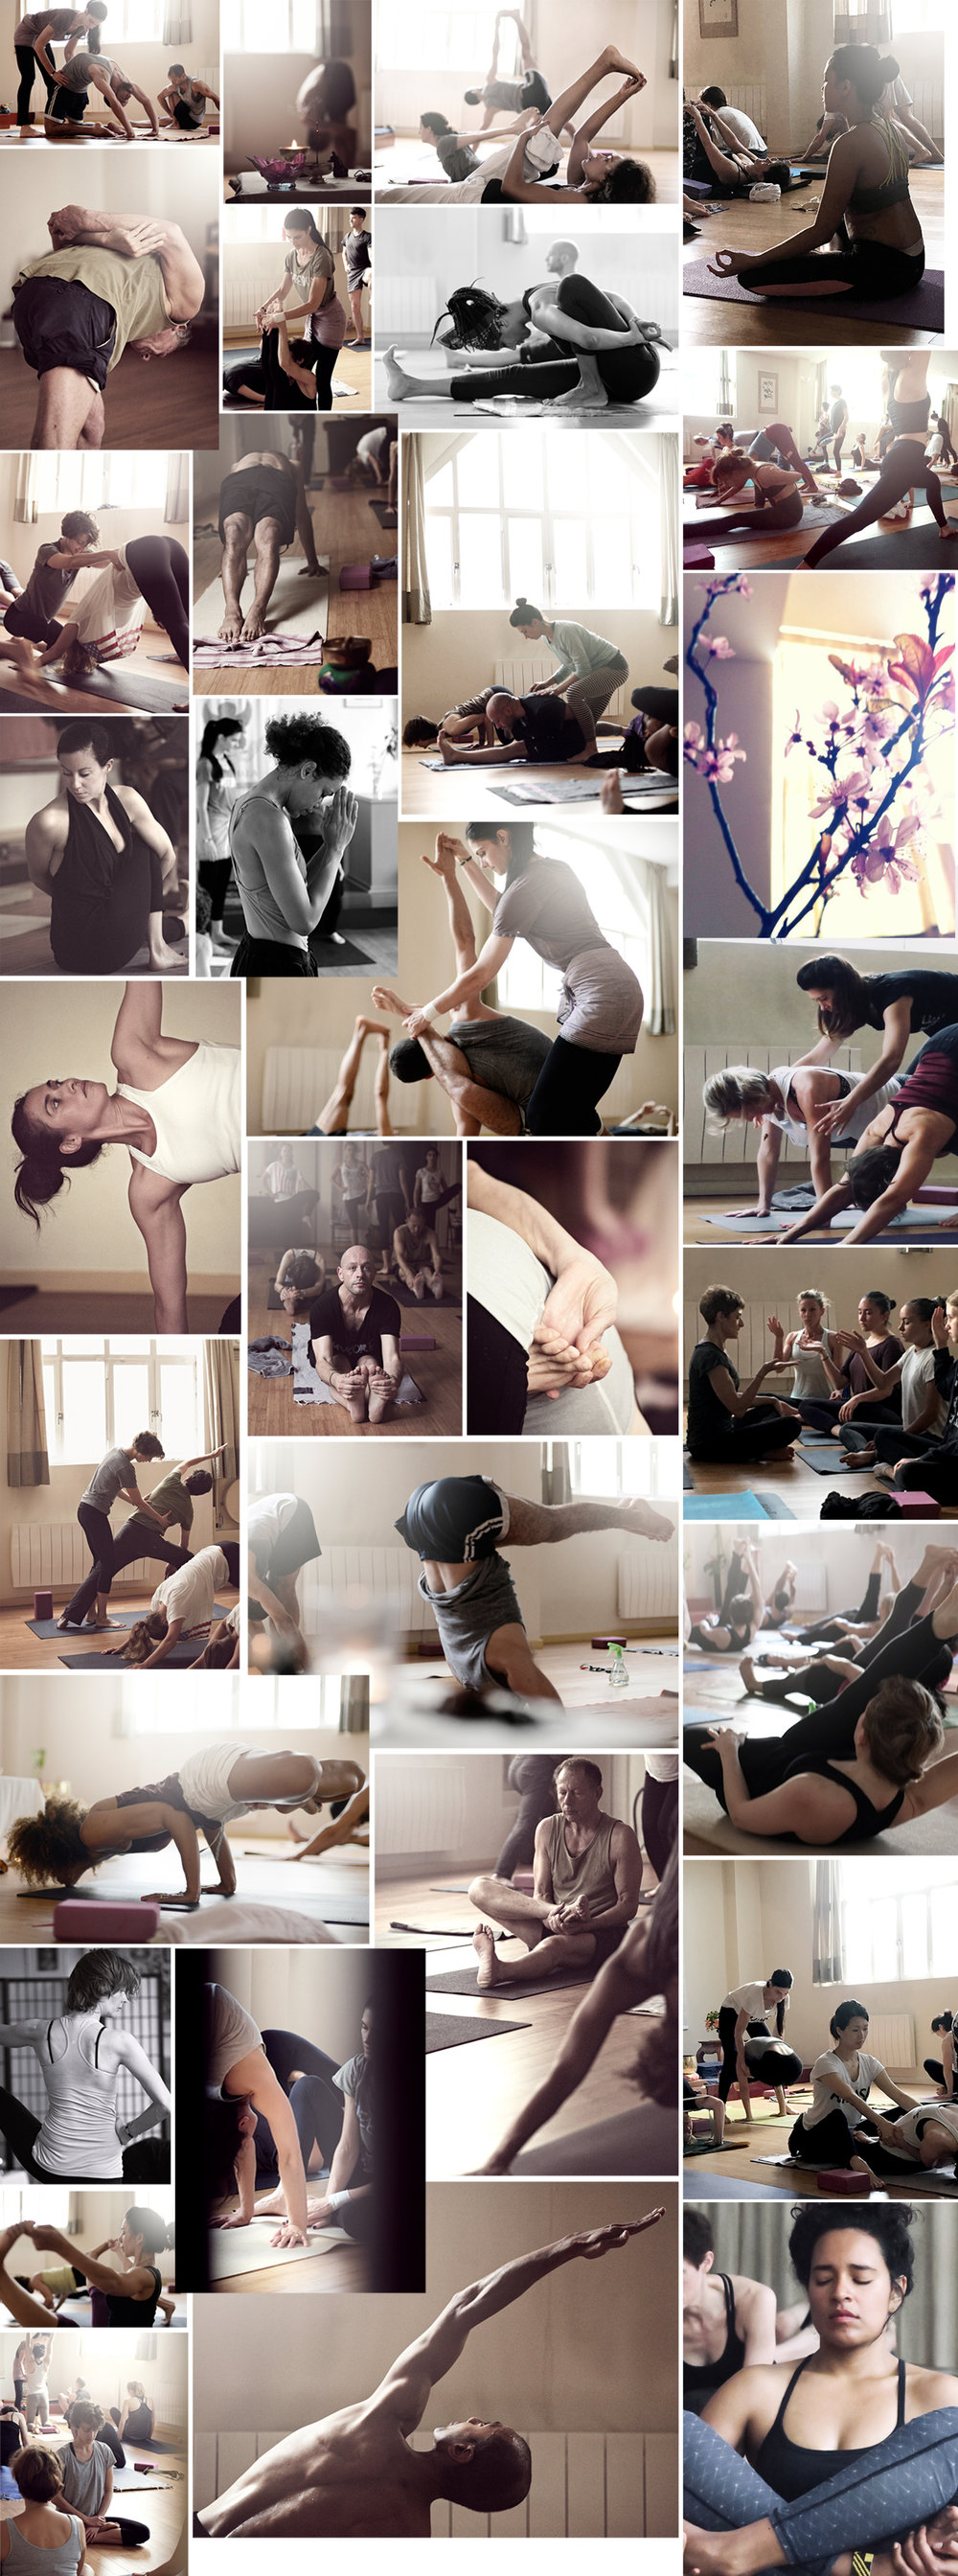 Mysore Style and Intro to Mysore at Mysore Yoga Paris Ashtanga Yoga Studio in Paris 11e